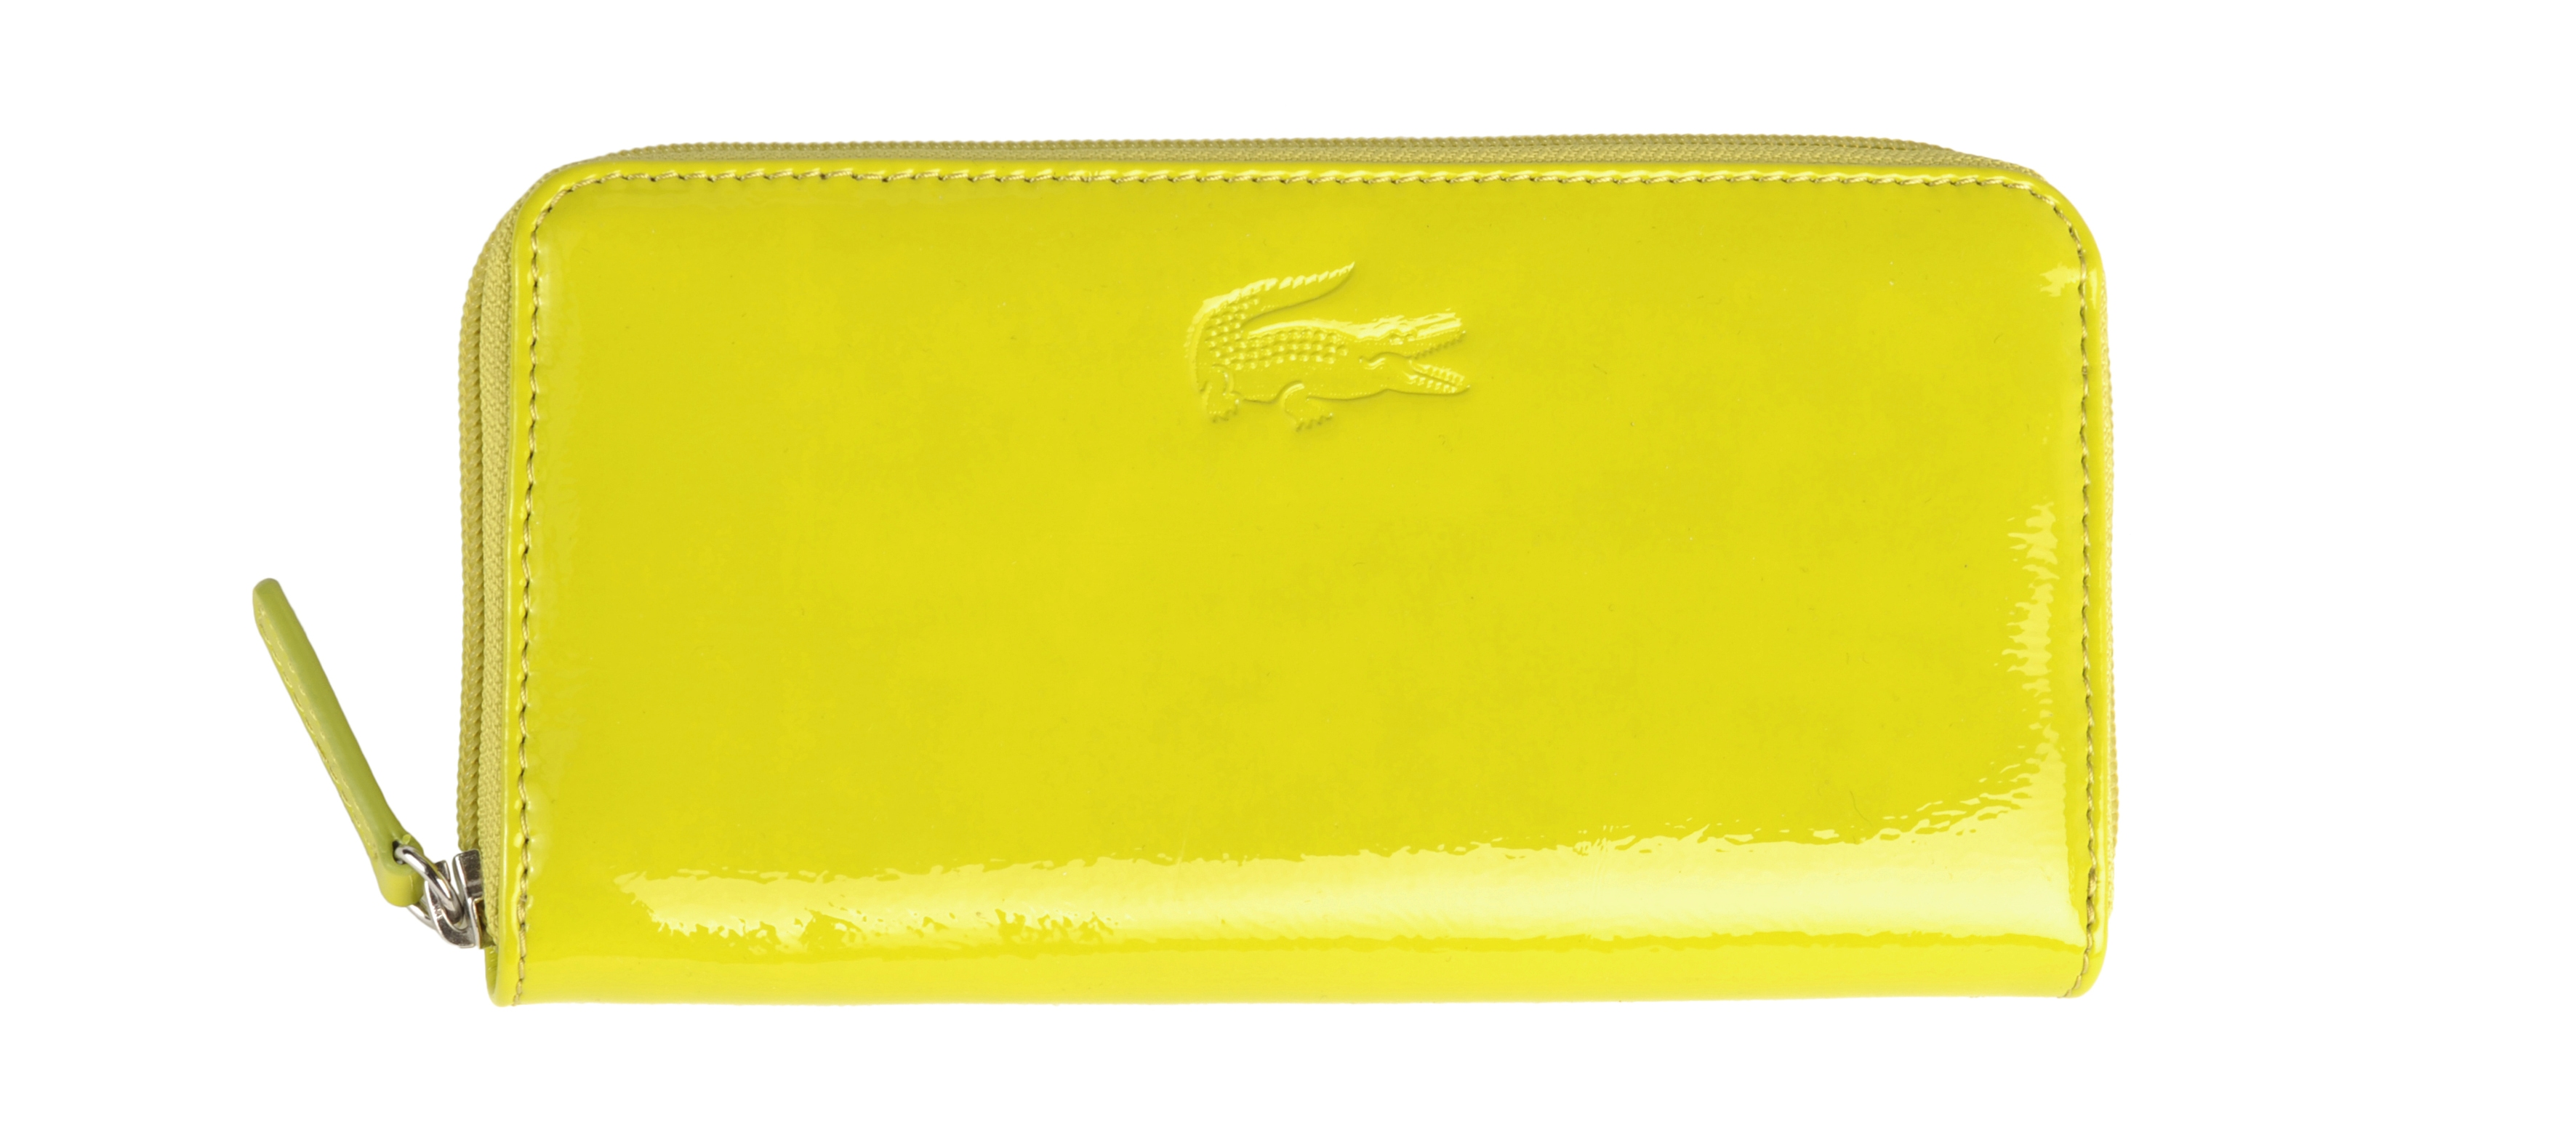 Zip Wallet from Lacoste